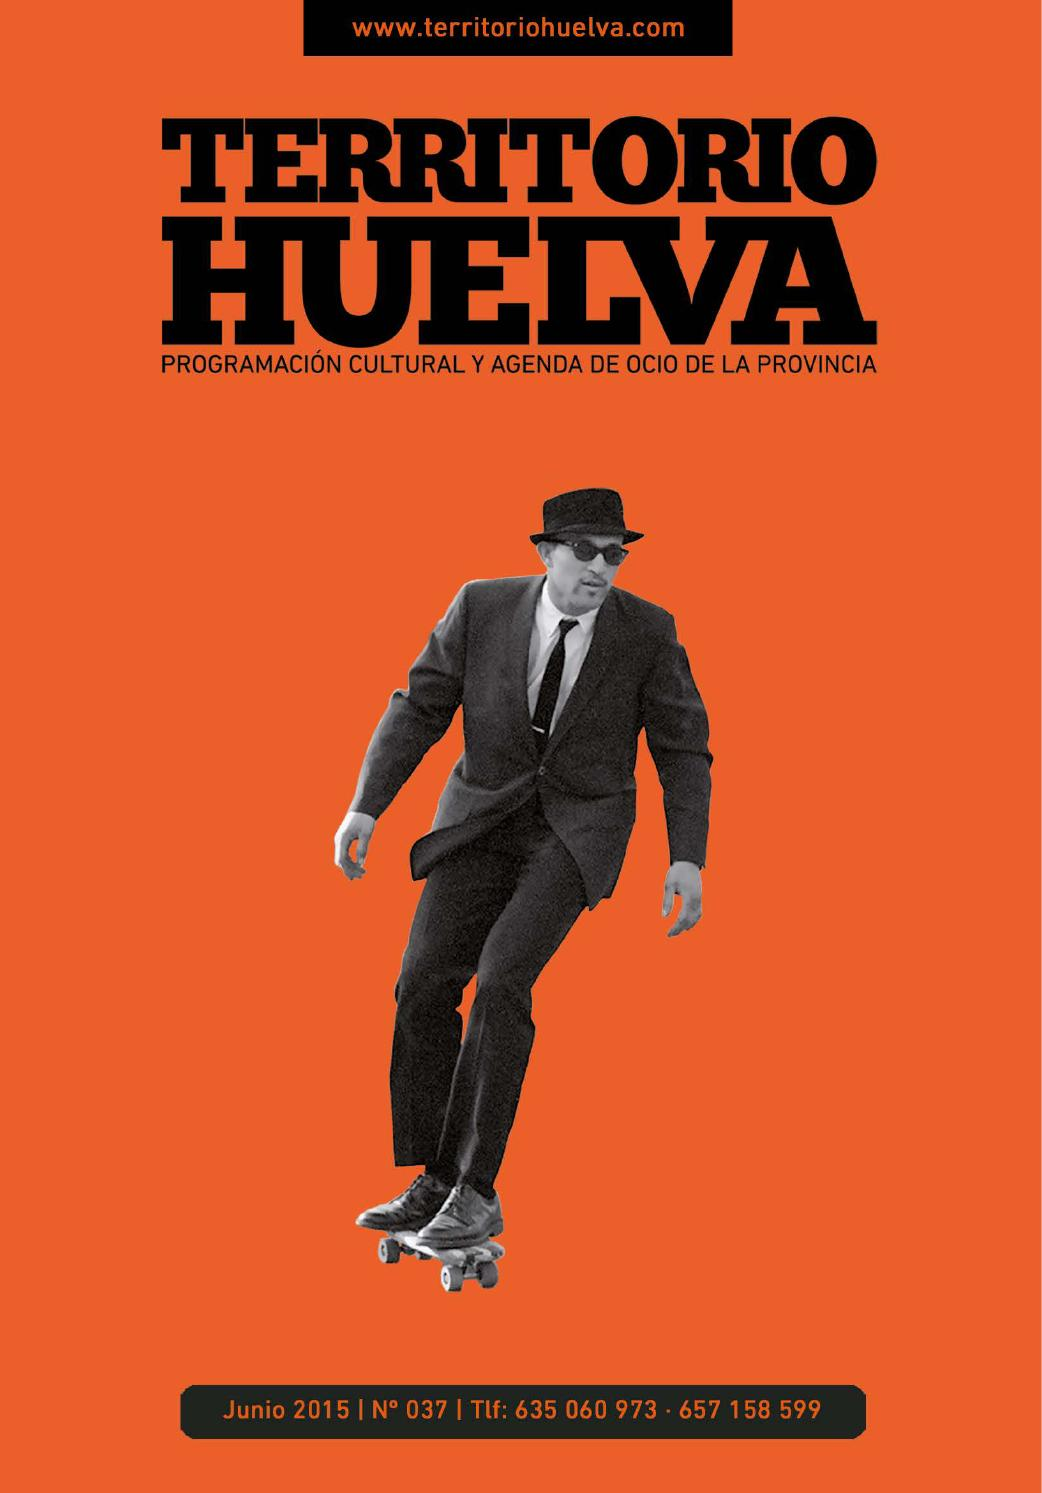 Revista Territorio Huelva Junio 2015 Descarga By Territorio Huelva  # Muebles Soto Ayamonte